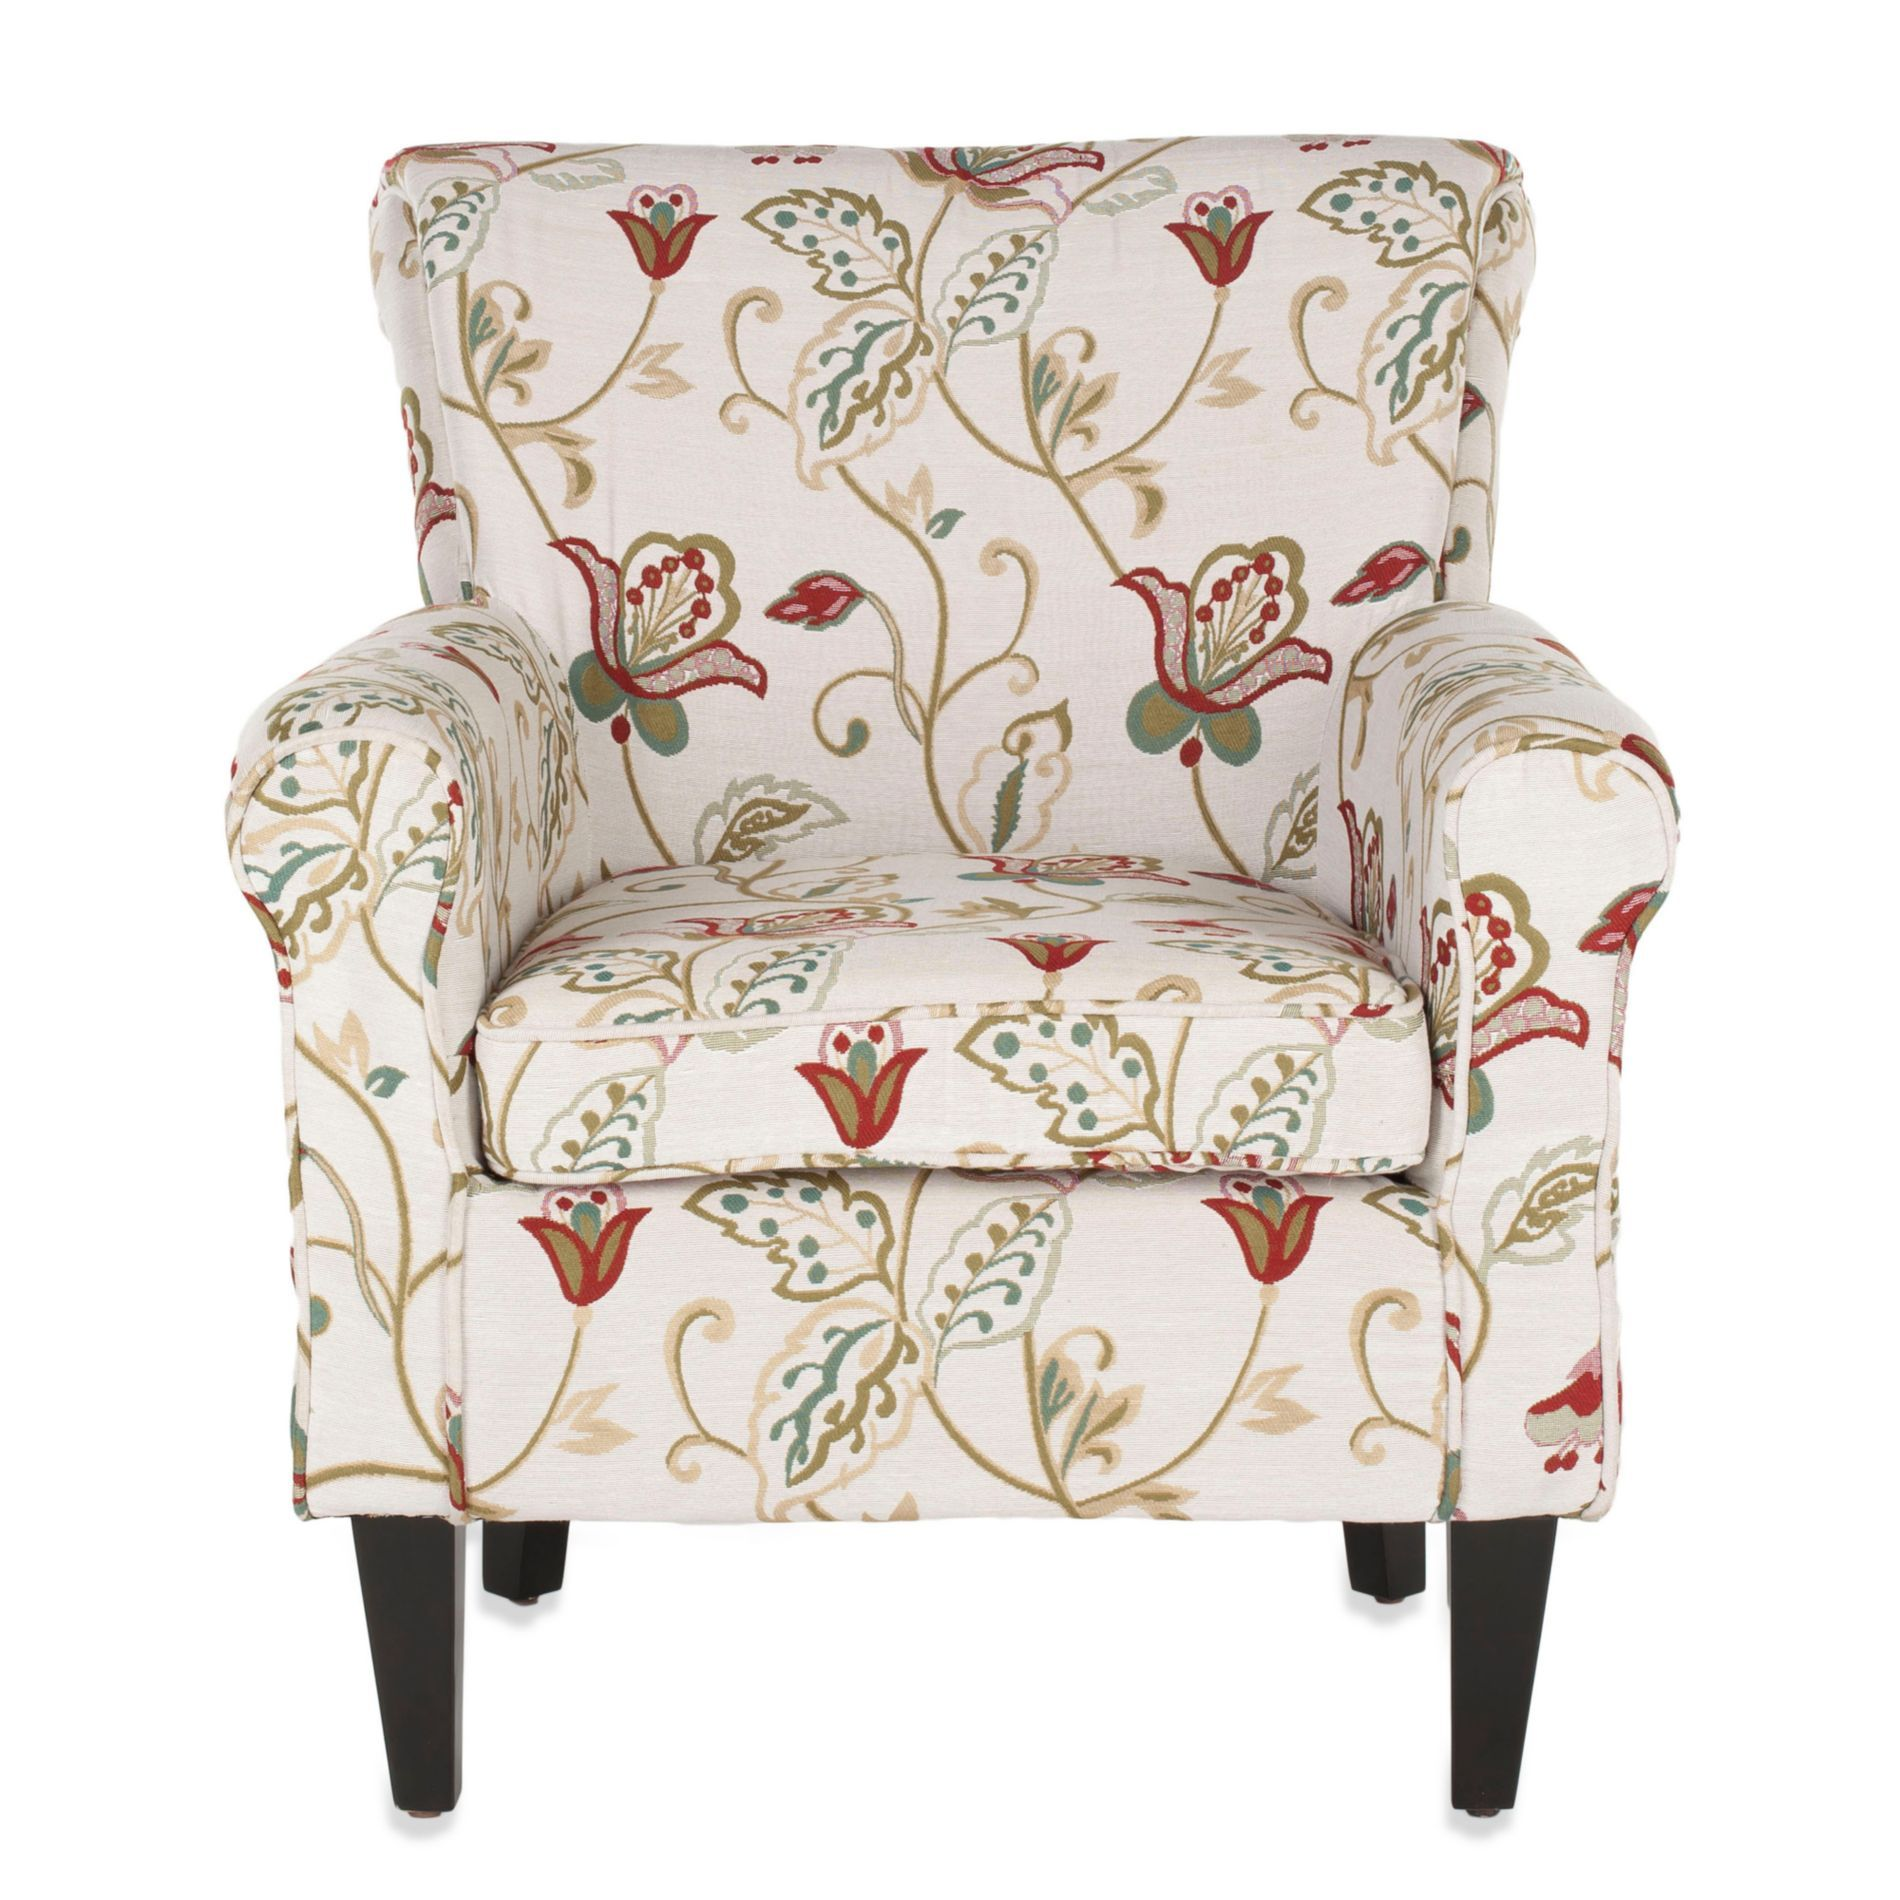 Safavieh Hazina Club Chair | Living rooms, Room and Living spaces